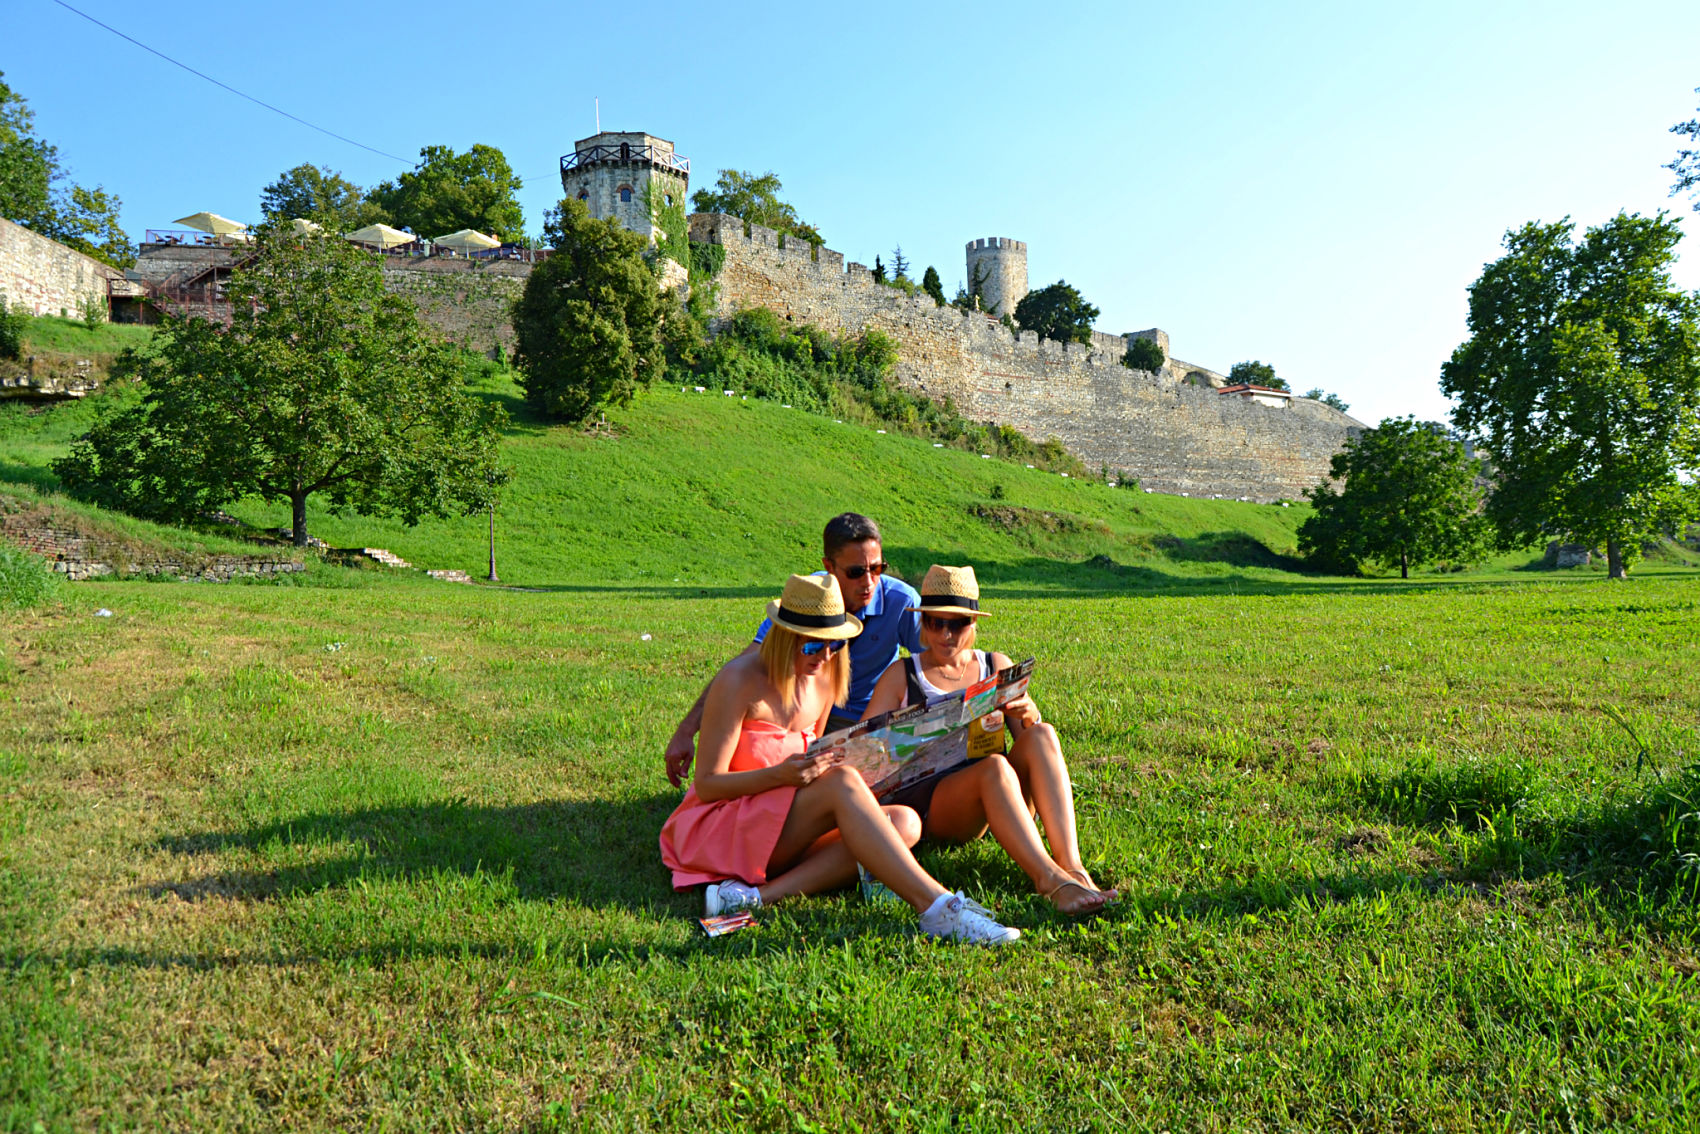 Young people siting the park in fron of Kalemegdan Fortress,Belgrade